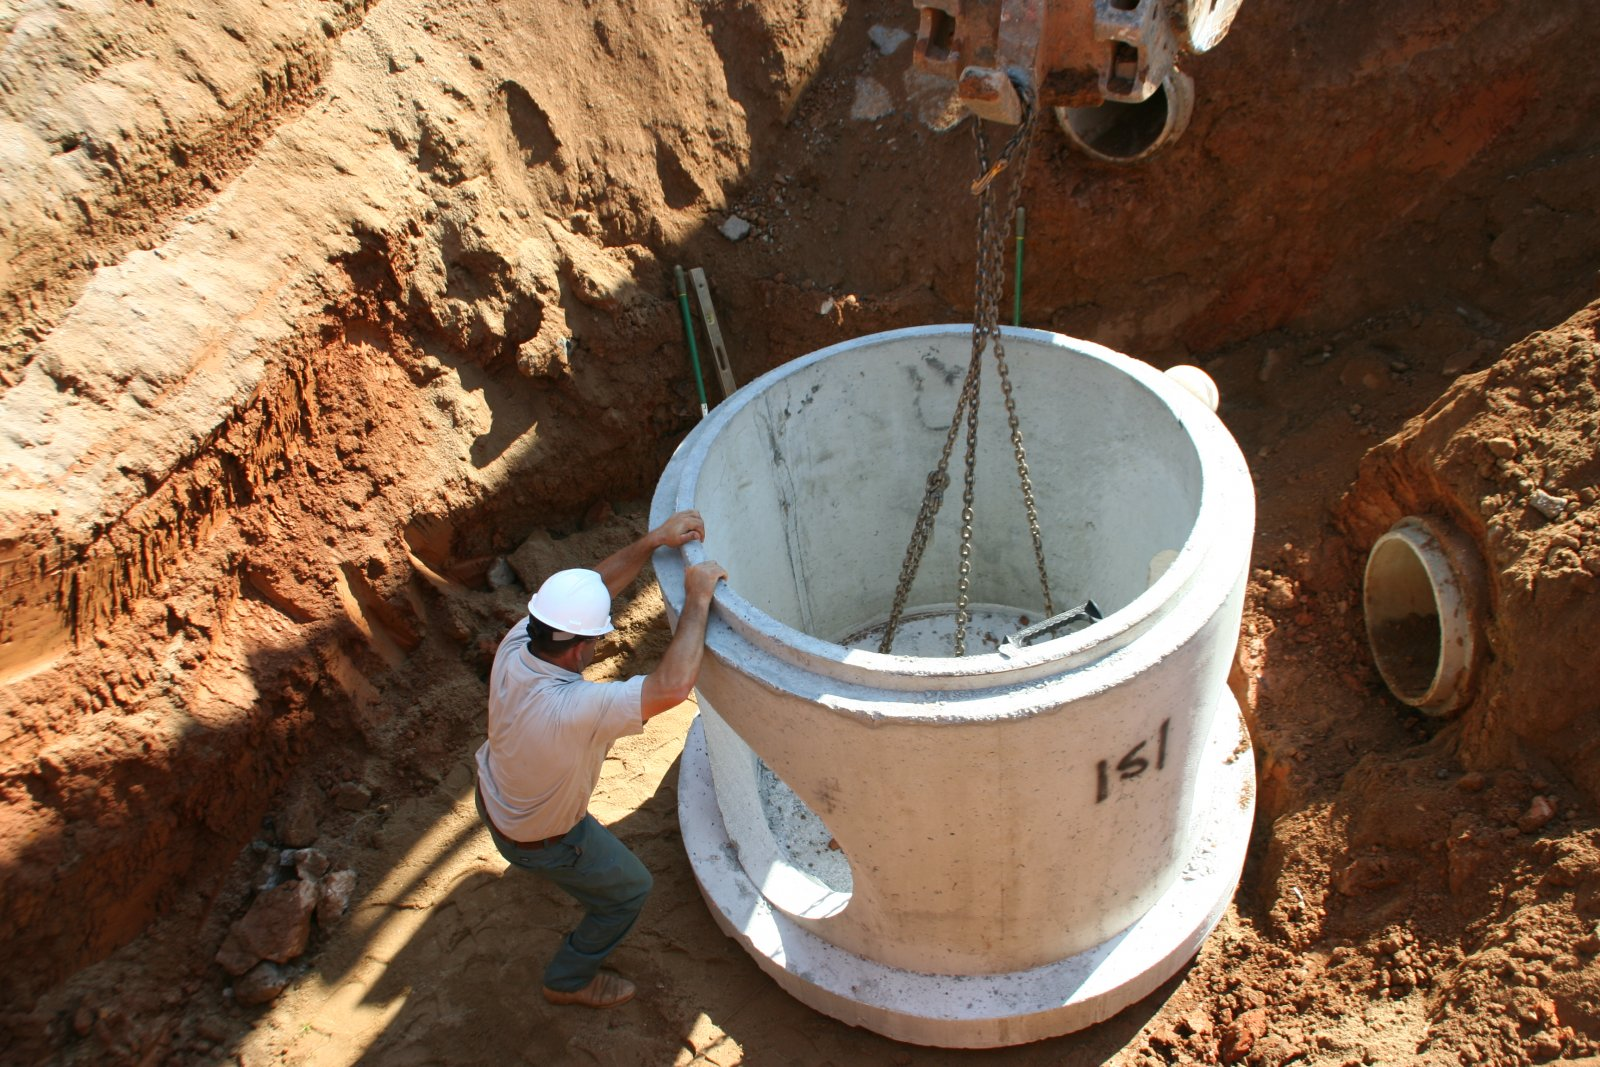 ... Install And Repair Storm Drainage Systems. Related Services Including  Total Site Work, Erosion Control, Grading And Excavation, And Boulder Walls  Are ...